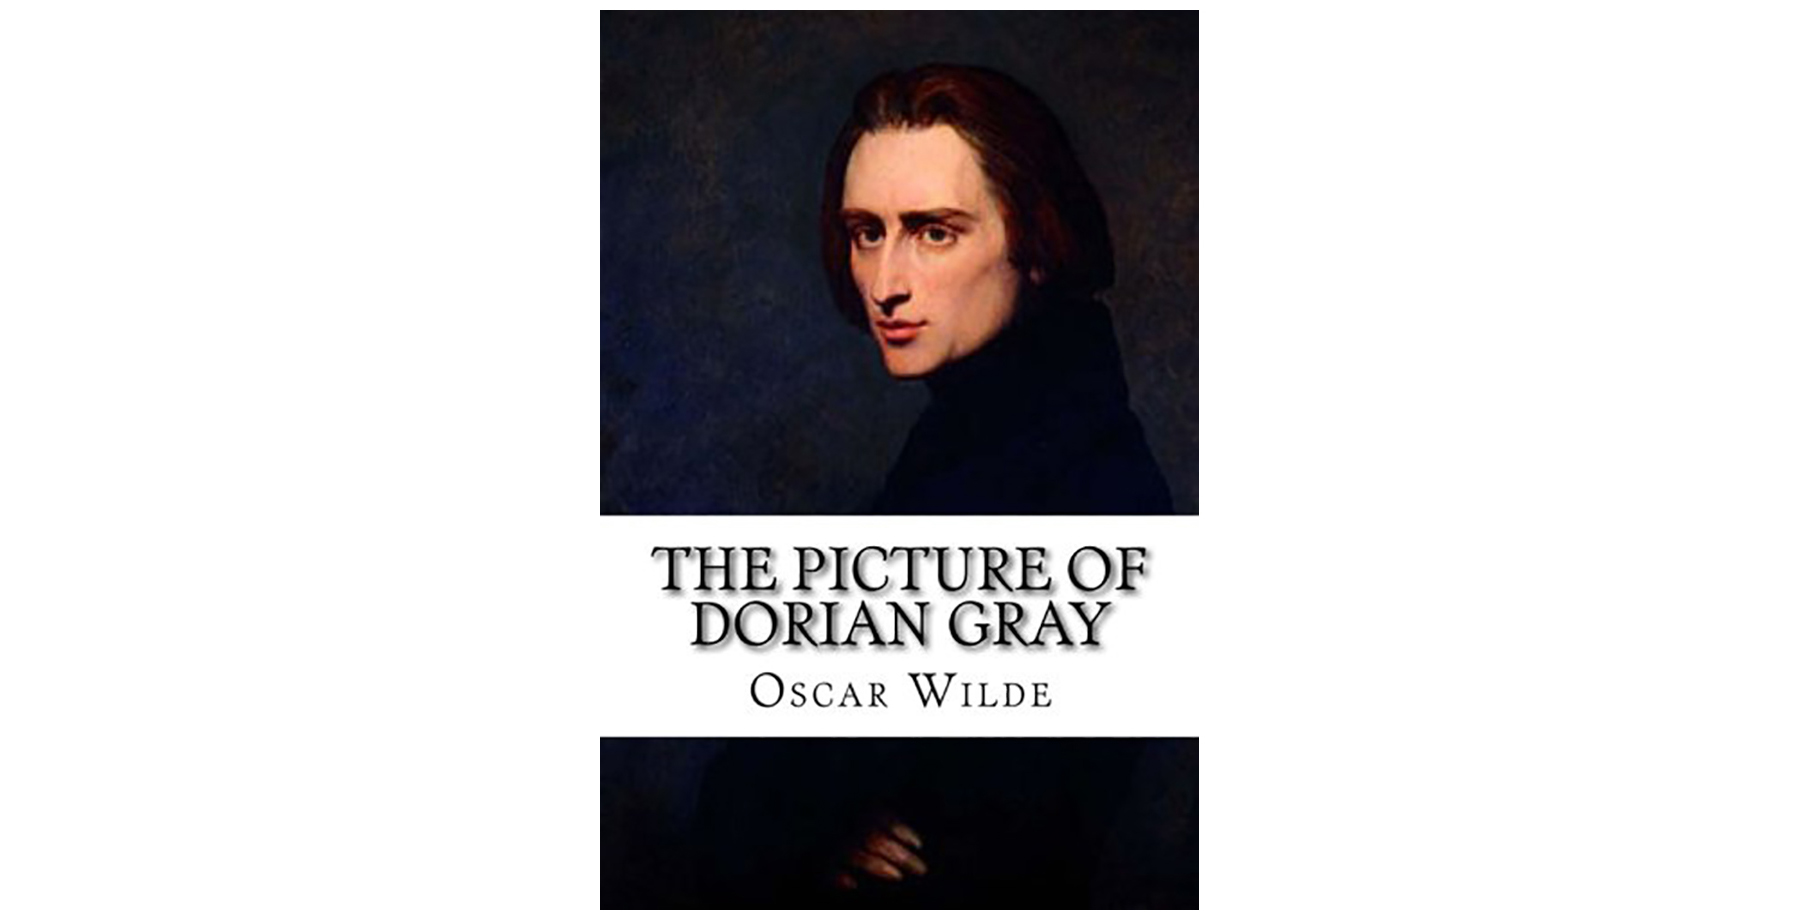 Cover of The Picture of Dorian Gray, by Oscar Wilde